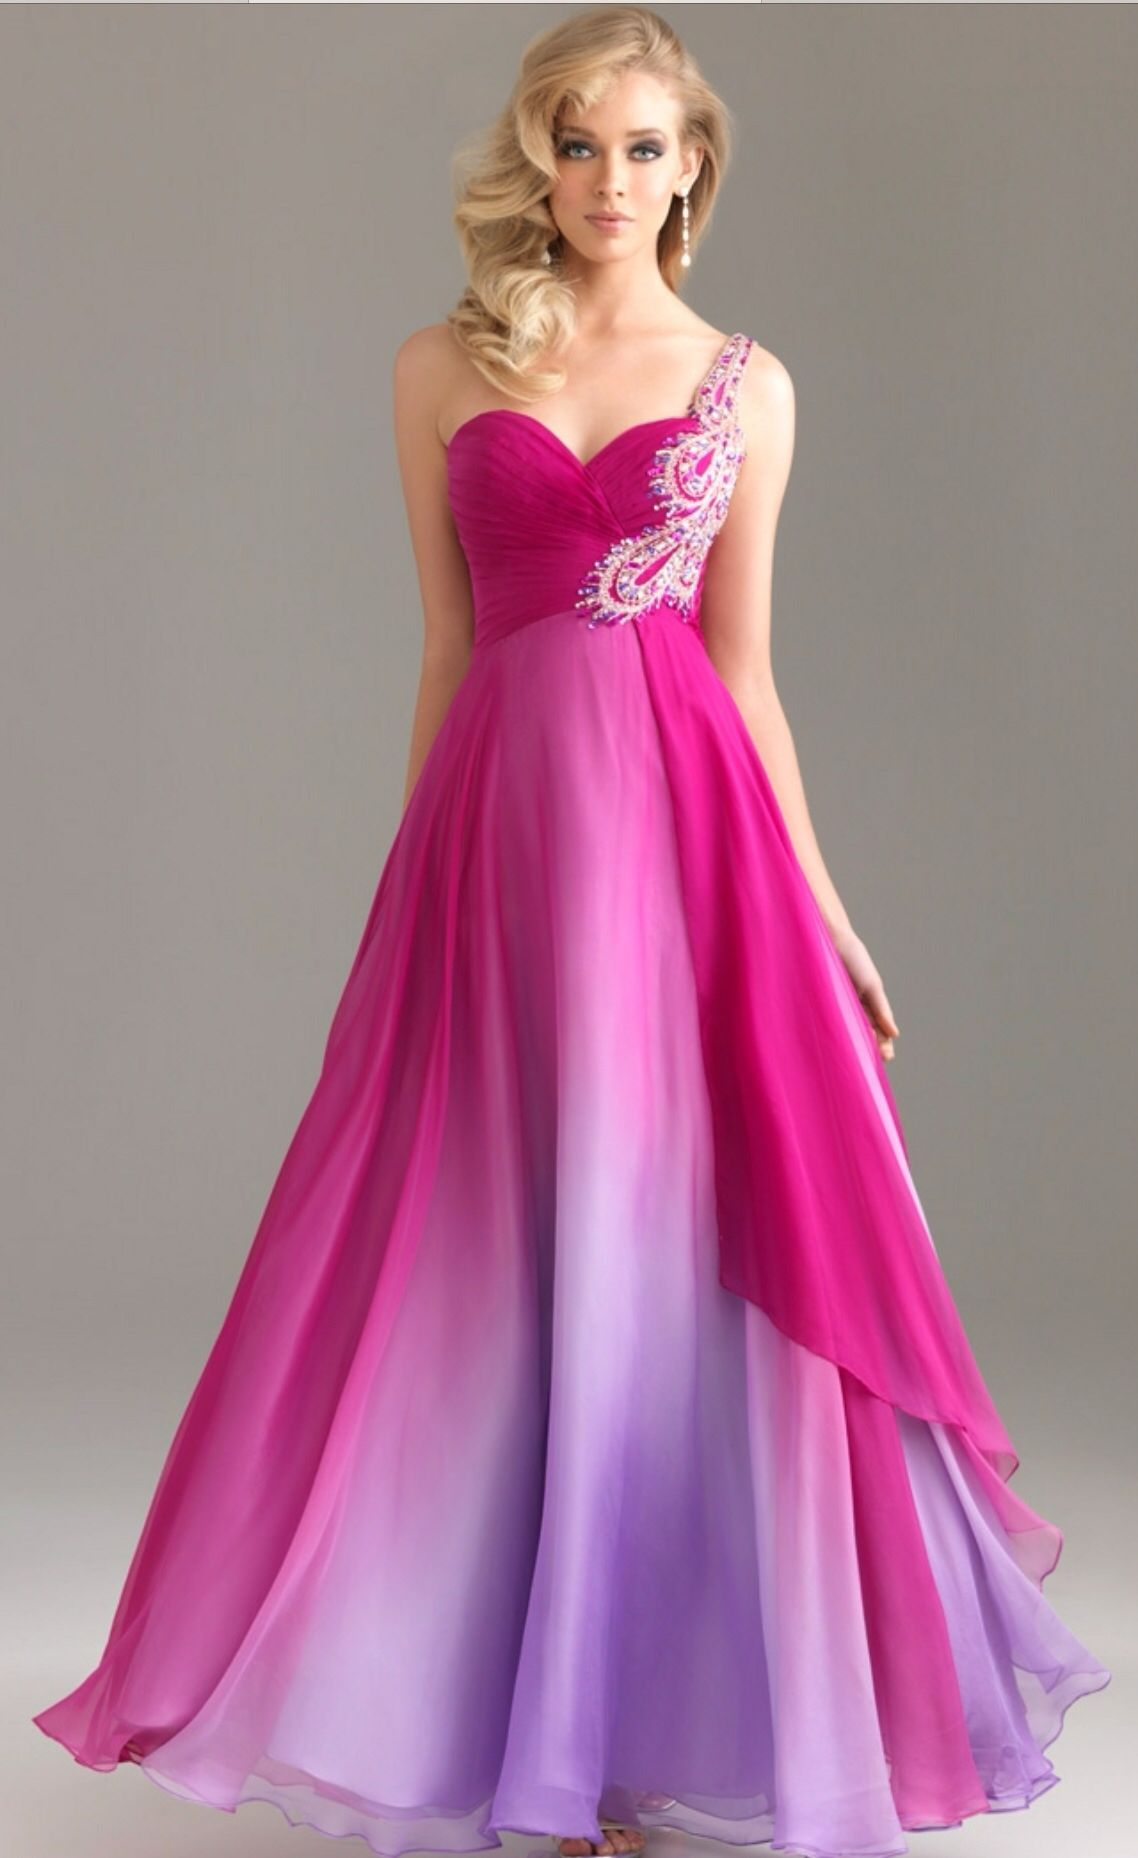 Long faded pink dress with embellishment dresses pinterest